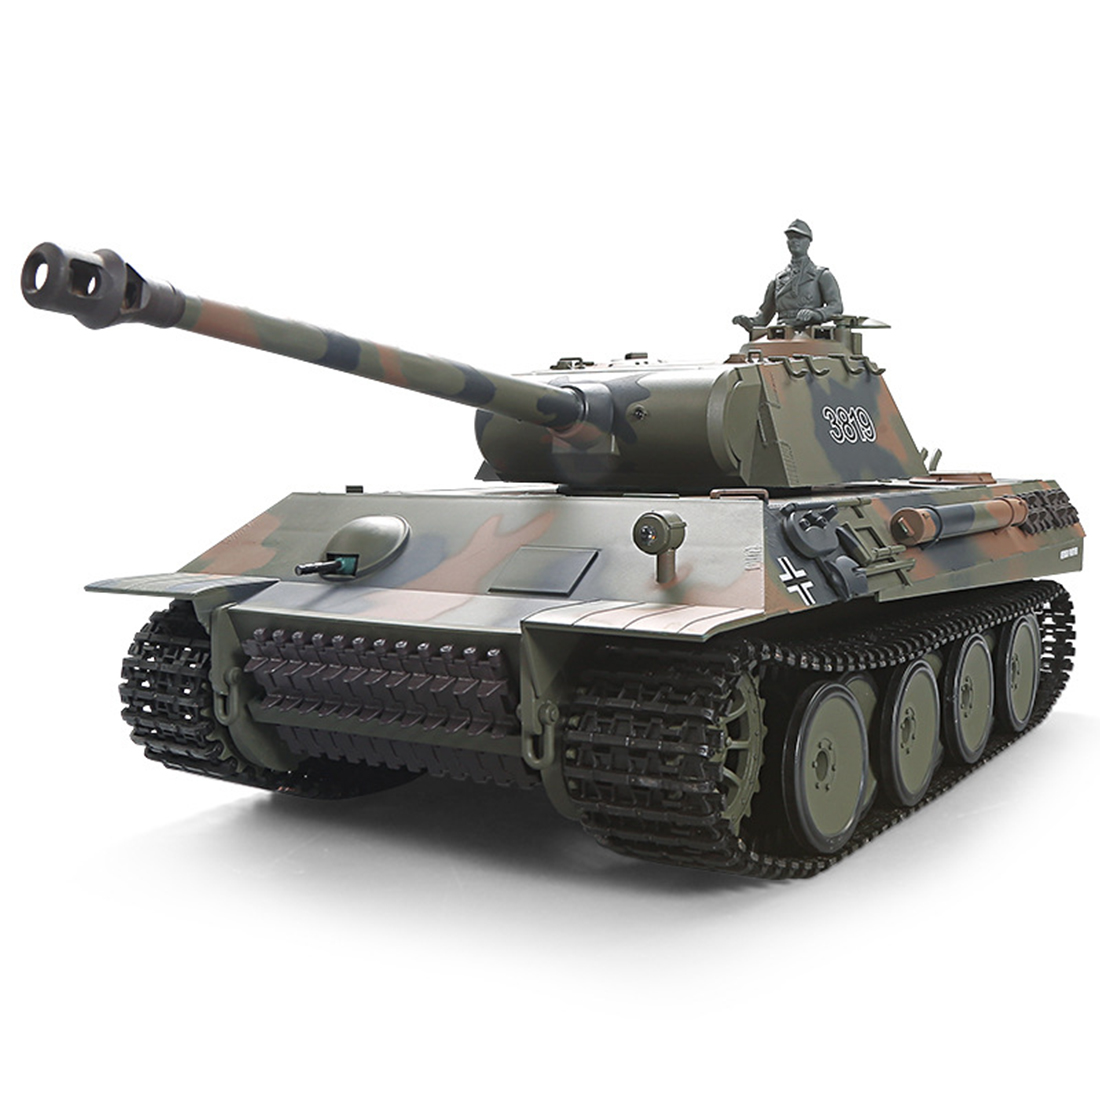 1set 1:16 German Leopard Heavy <font><b>Tank</b></font> 2.4G Remote Control Model Military <font><b>Tank</b></font> With Sound Smoke Shooting Effect image